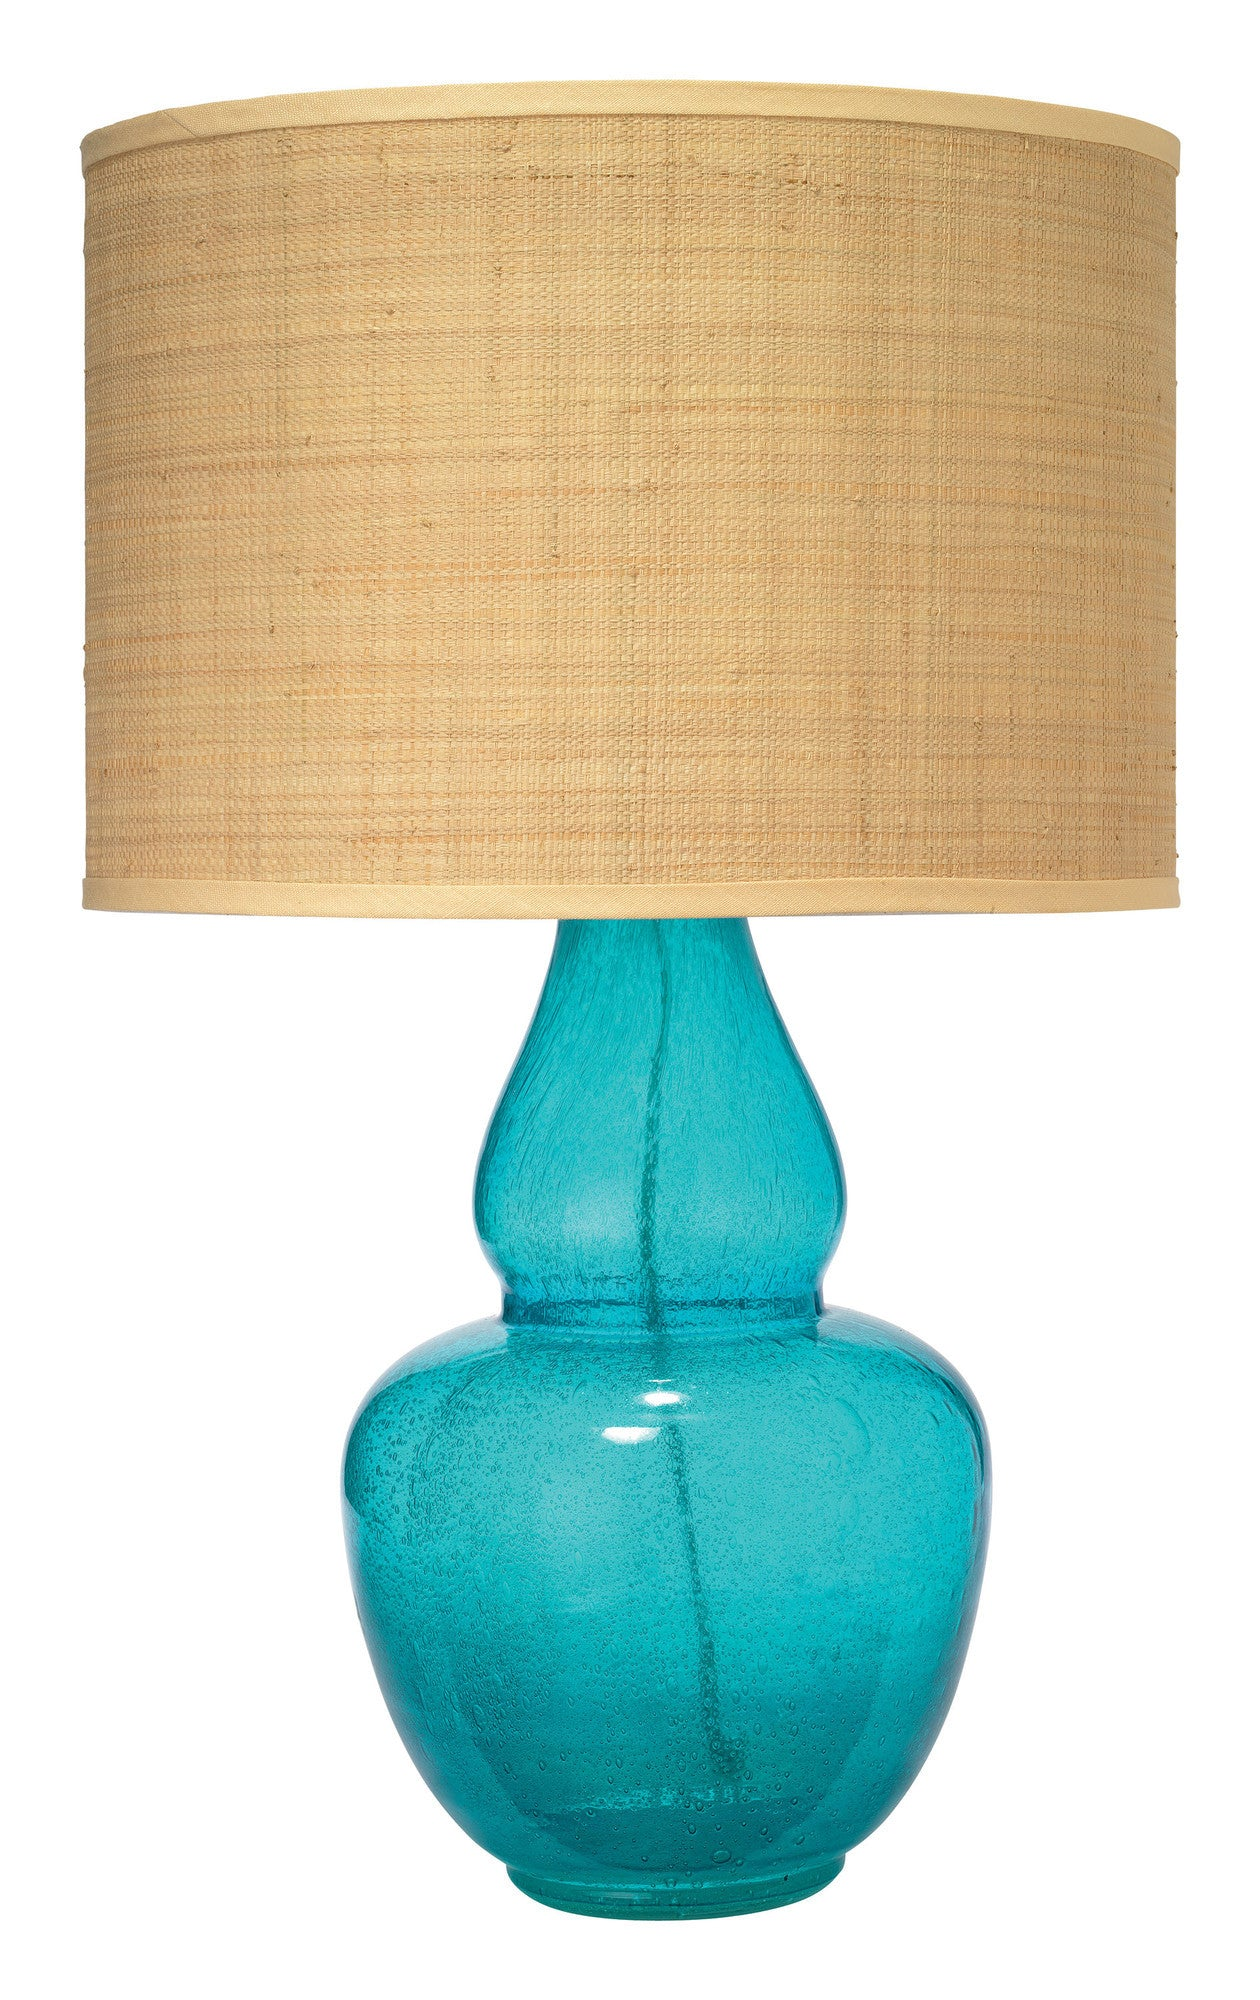 Gourd aqua table lamp jamie young luxe home philadelphia gourd aqua table lamp jamie young geotapseo Images